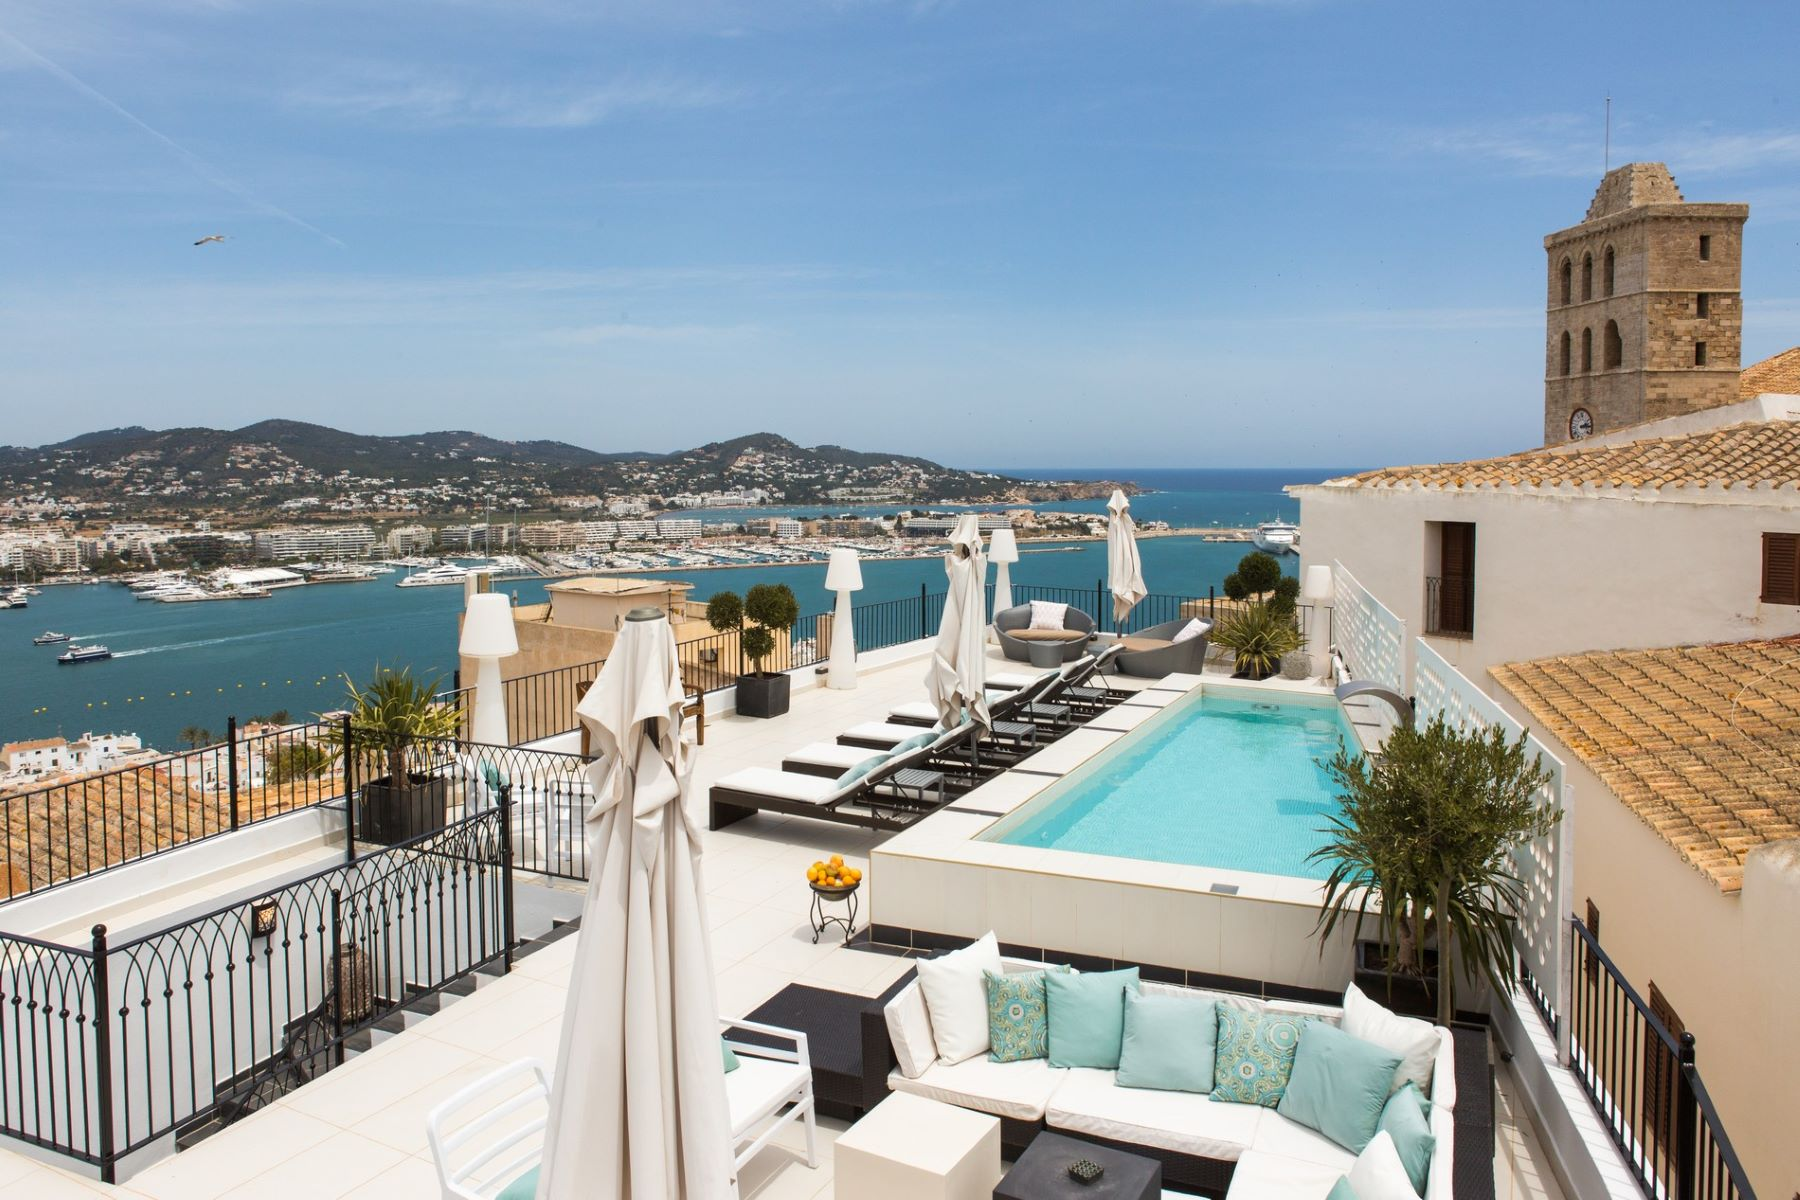 Maison unifamiliale pour l Vente à Extraordinary Palace In The Heart Of Dalt Vila Other Ibiza, Ibiza, 07800 Espagne